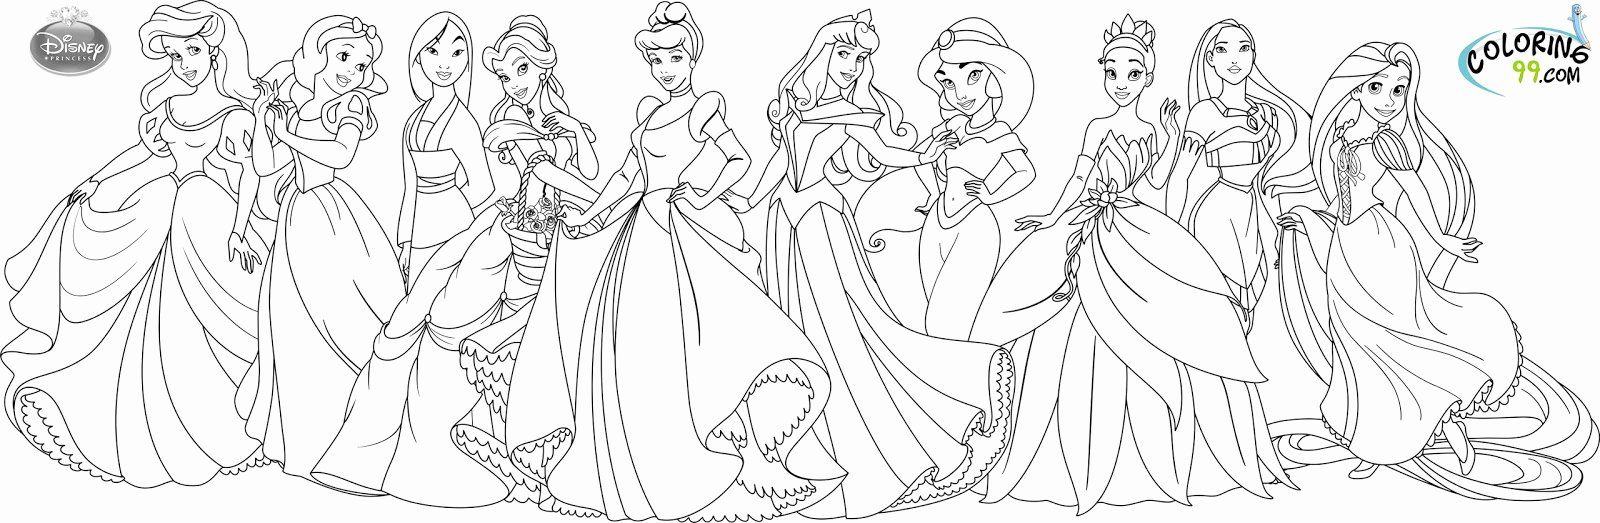 Disney Princess Coloring Book New Disney Princess Coloring Pages Princess Coloring Pages Disney Princess Colors Princess Coloring